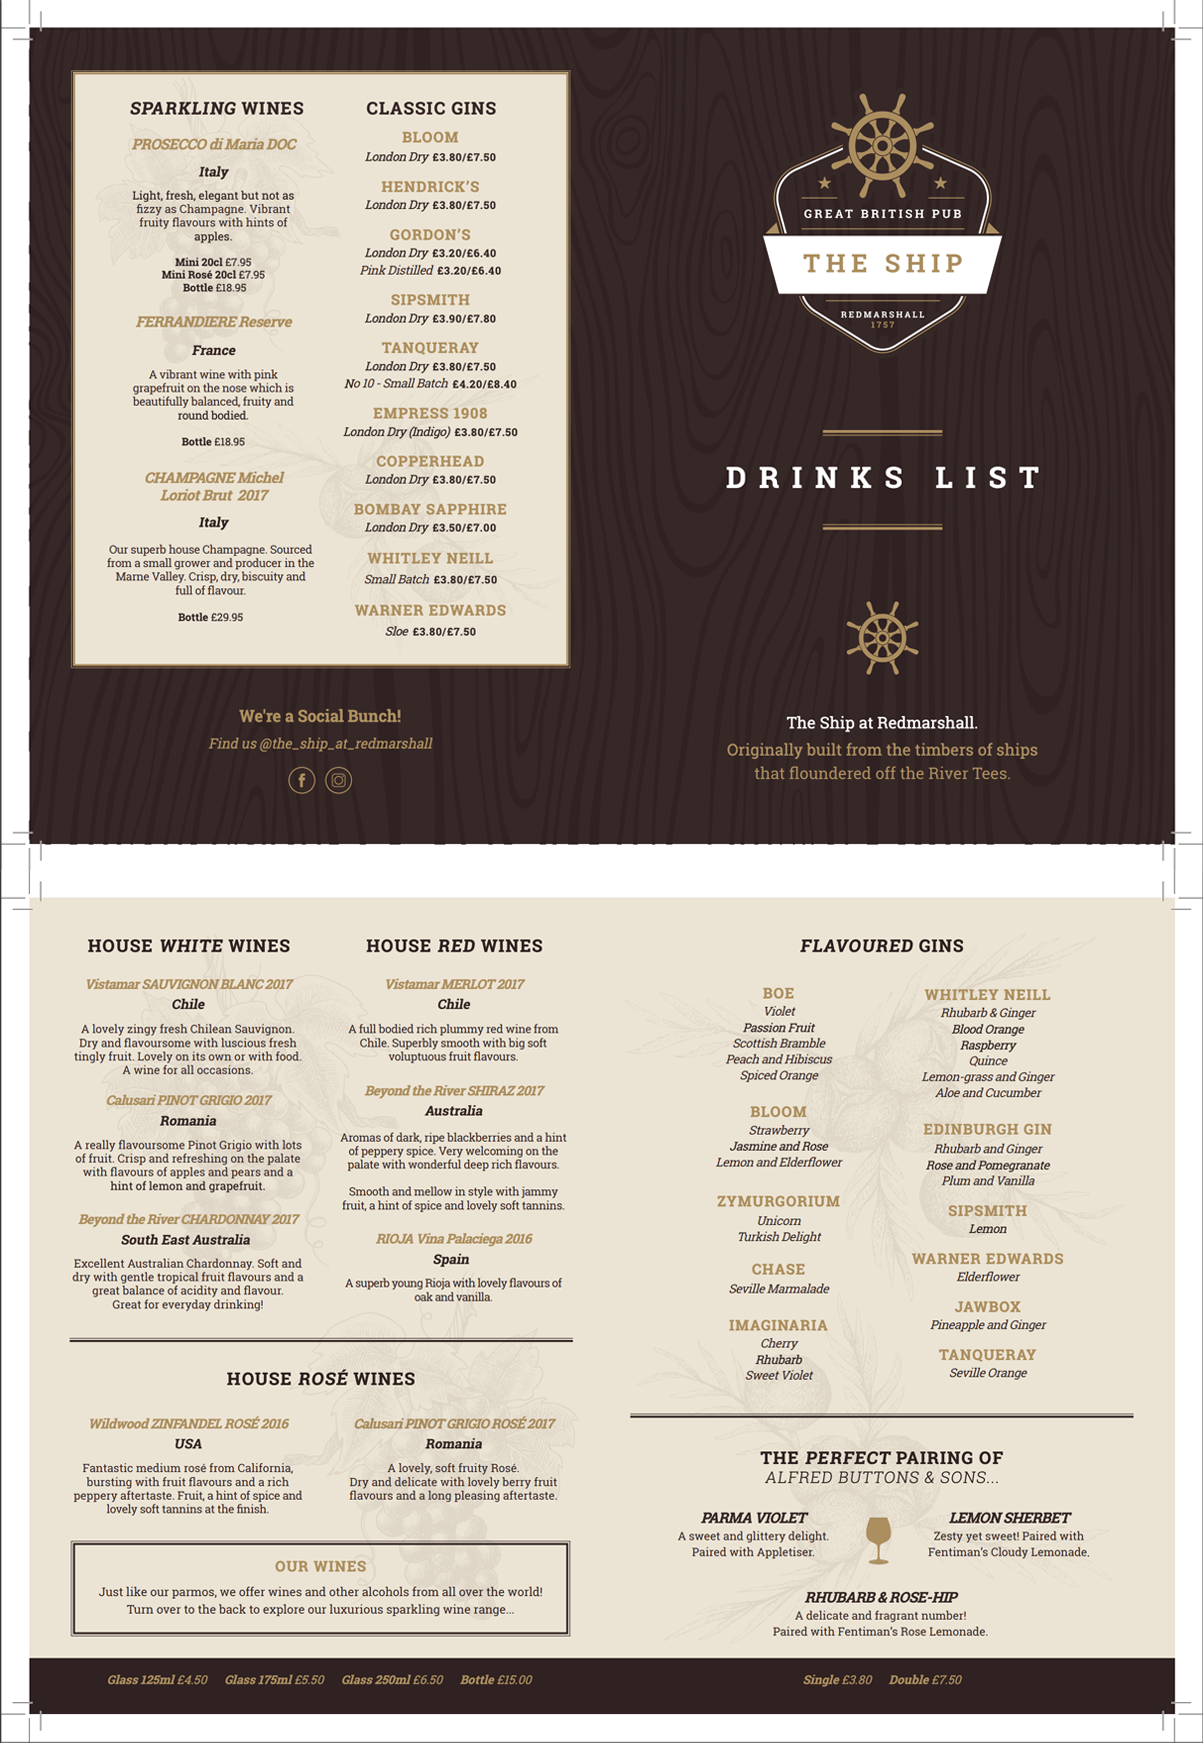 Drinks Menu Image